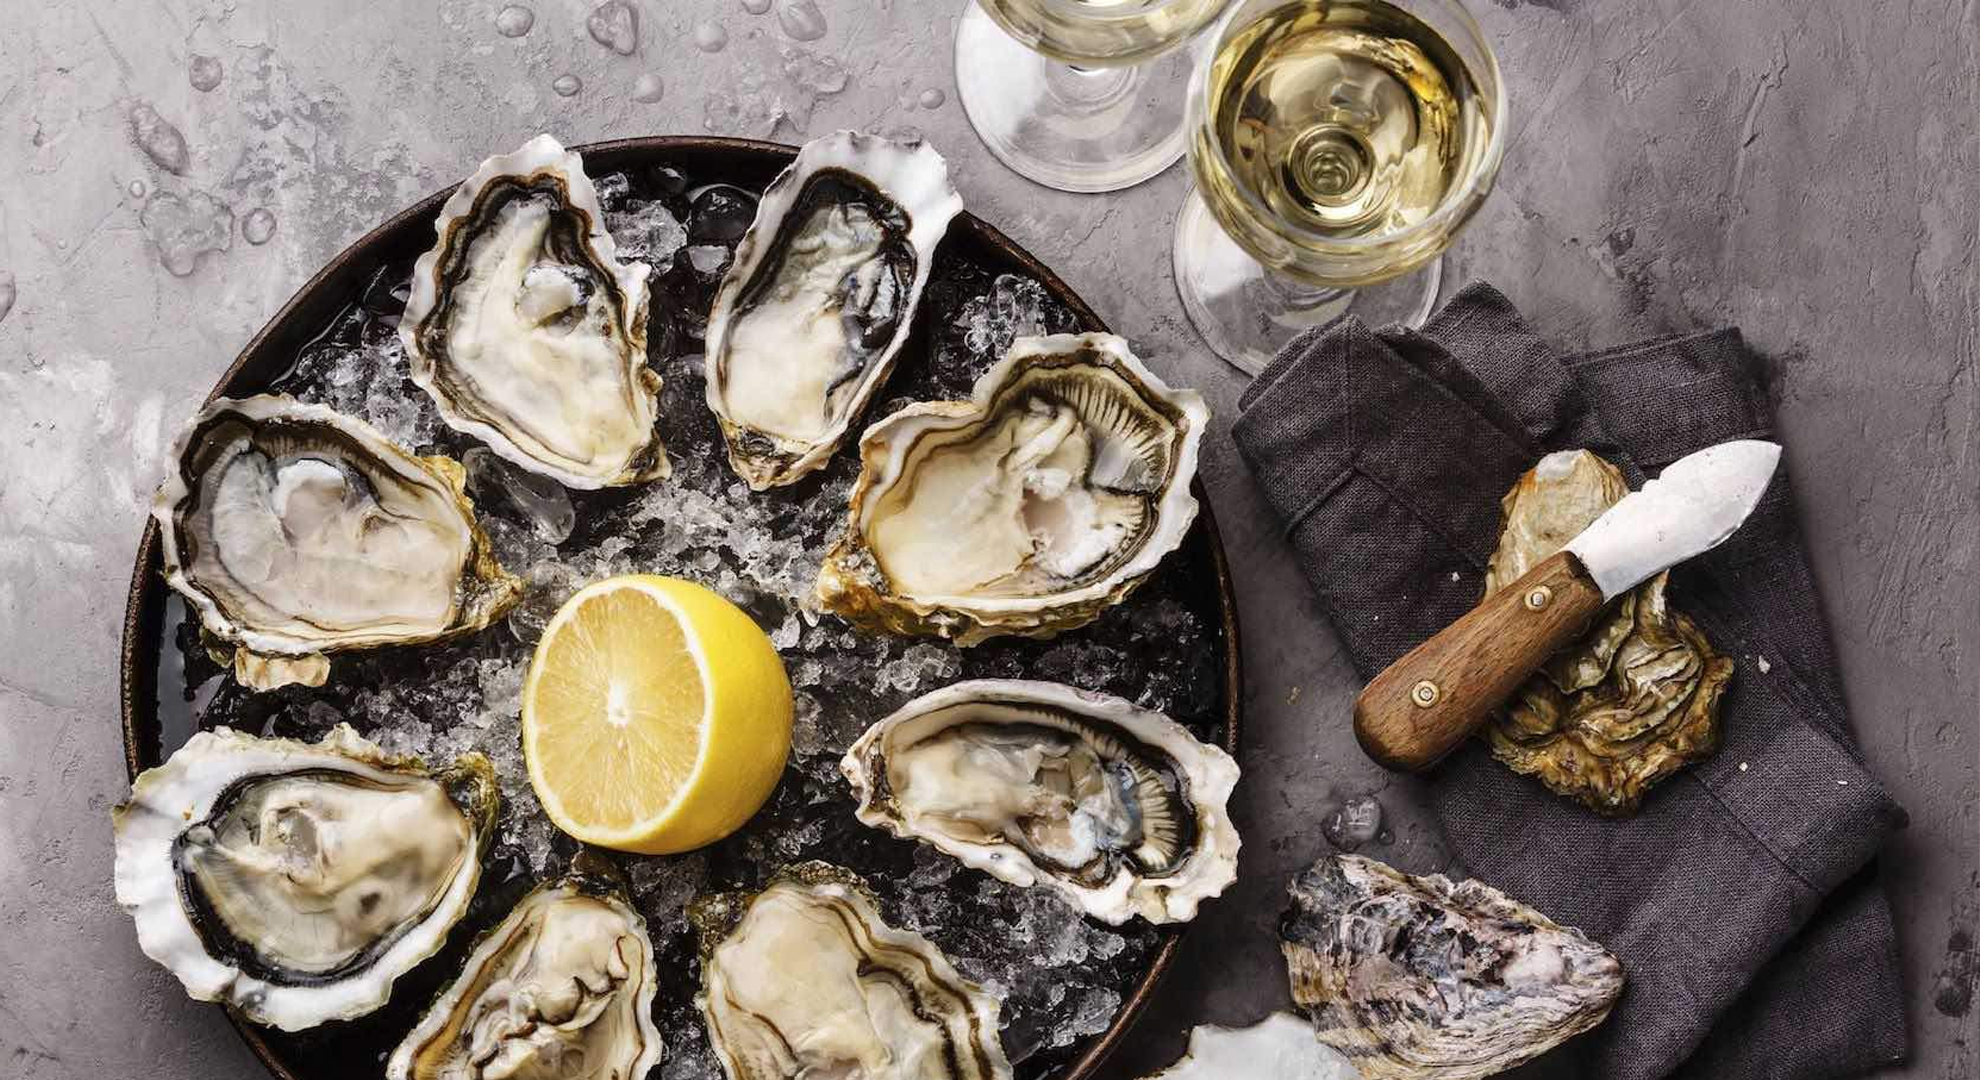 Oysters and lemon on a bed of ice, with an oyster shucking knife and two glasses of white wine.